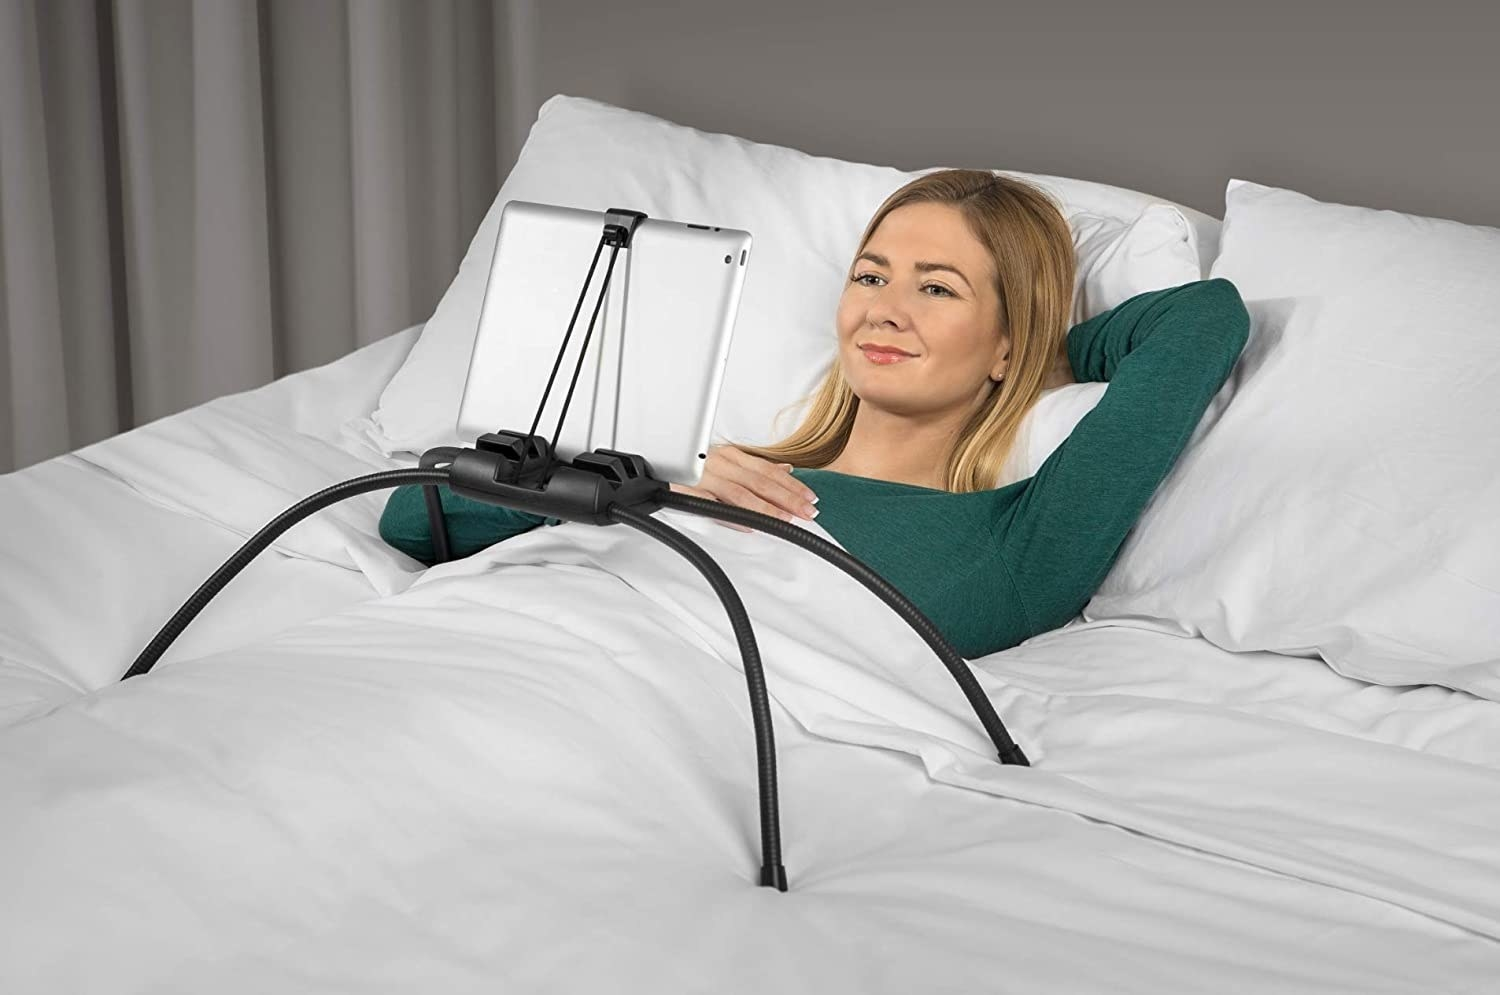 woman under the covers in bed with a tablet stand that has four bendable legs propped up on the bed so she can look at the screen without holding it